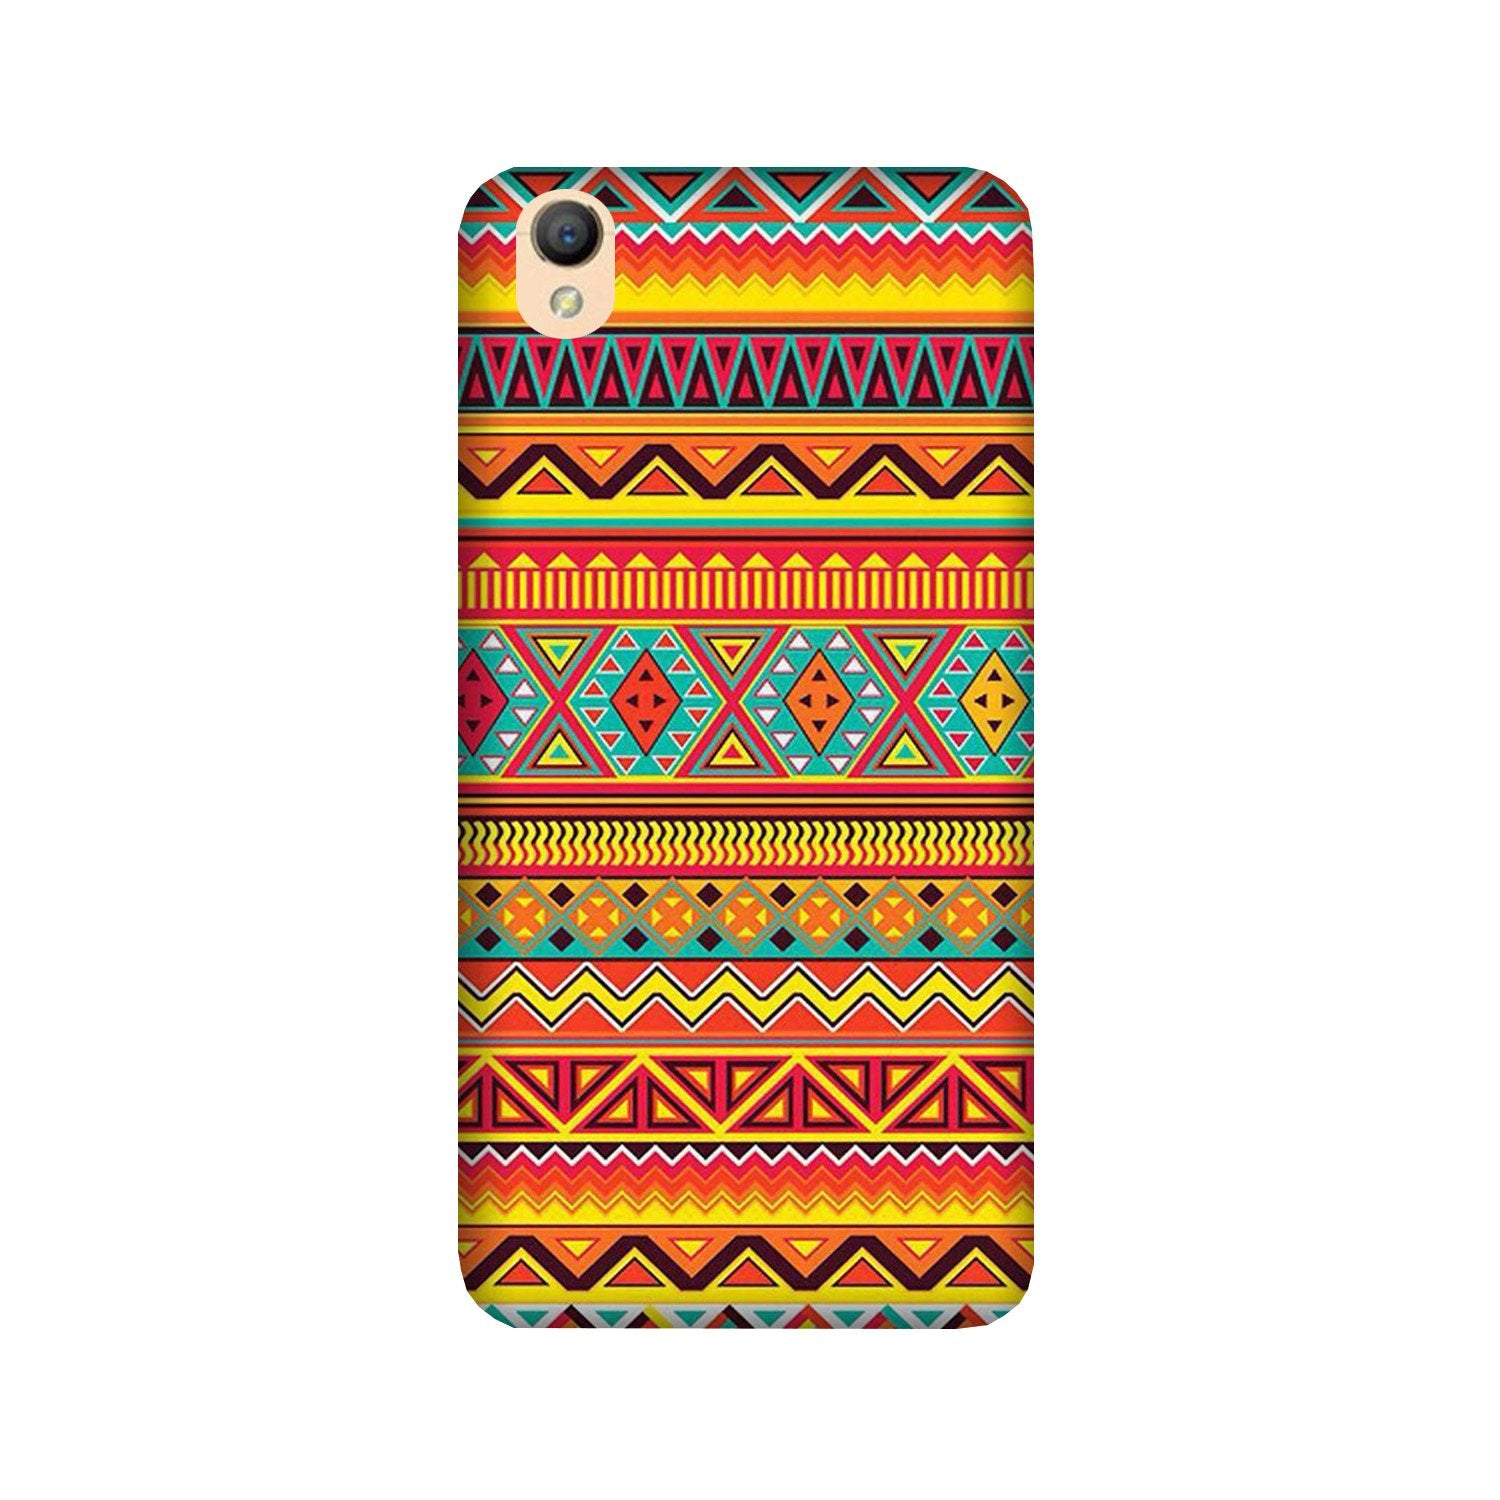 Zigzag line pattern Case for Oppo A37